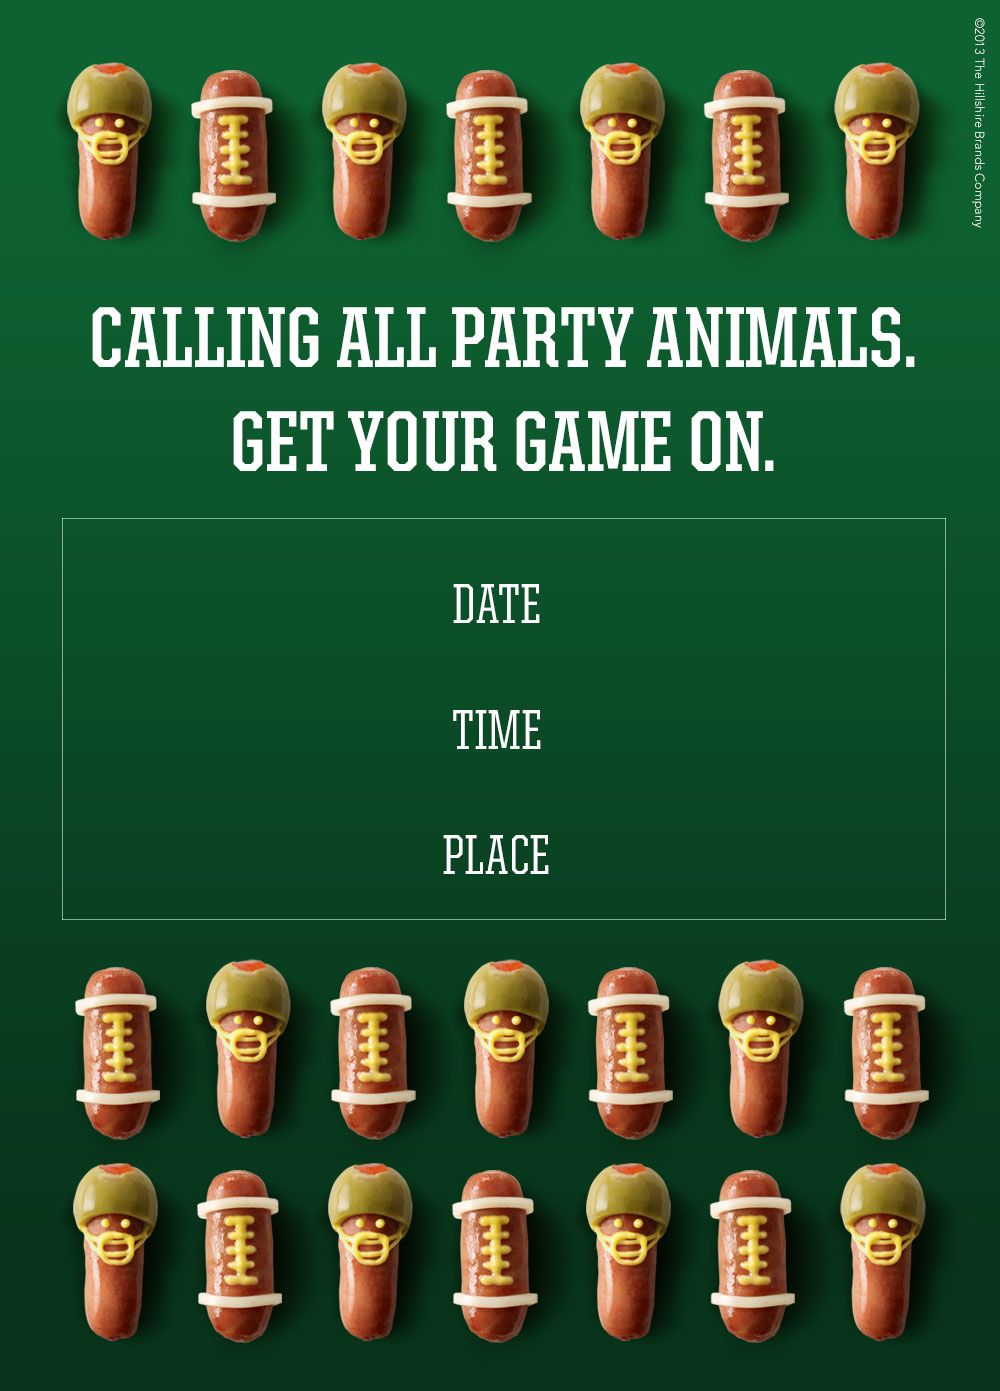 Calling all Party Animals! Get your game on. Click here to